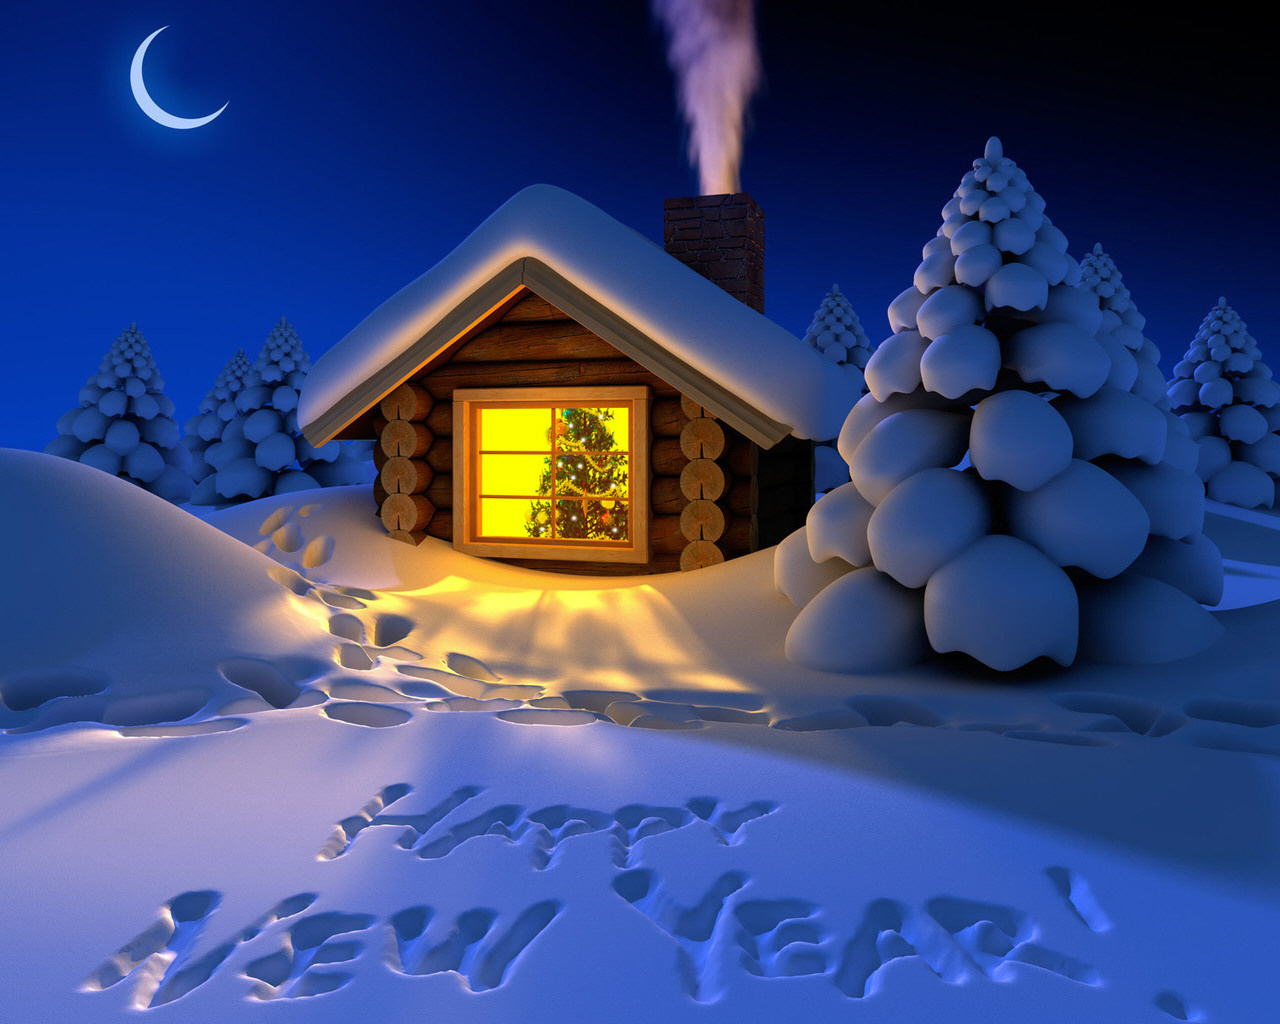 Best Desktop HD Wallpaper   Happy New Year Photo Desktop Wallpapers 1280x1024